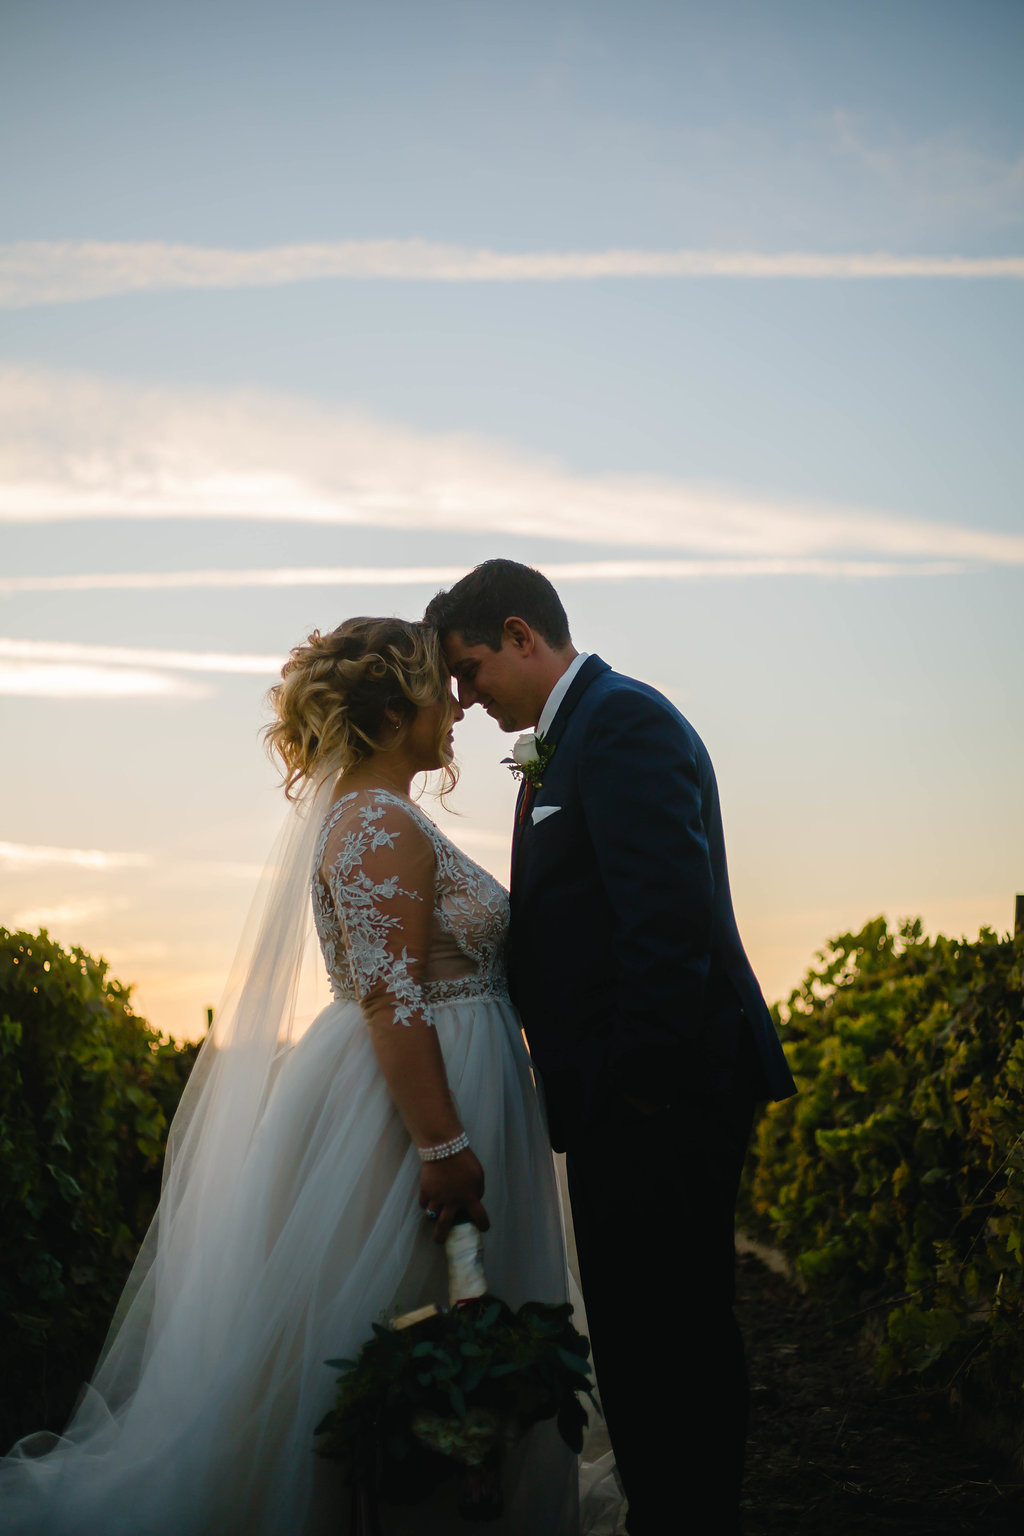 Sunset Silhouette Wedding Photos by Megan Helm Photography